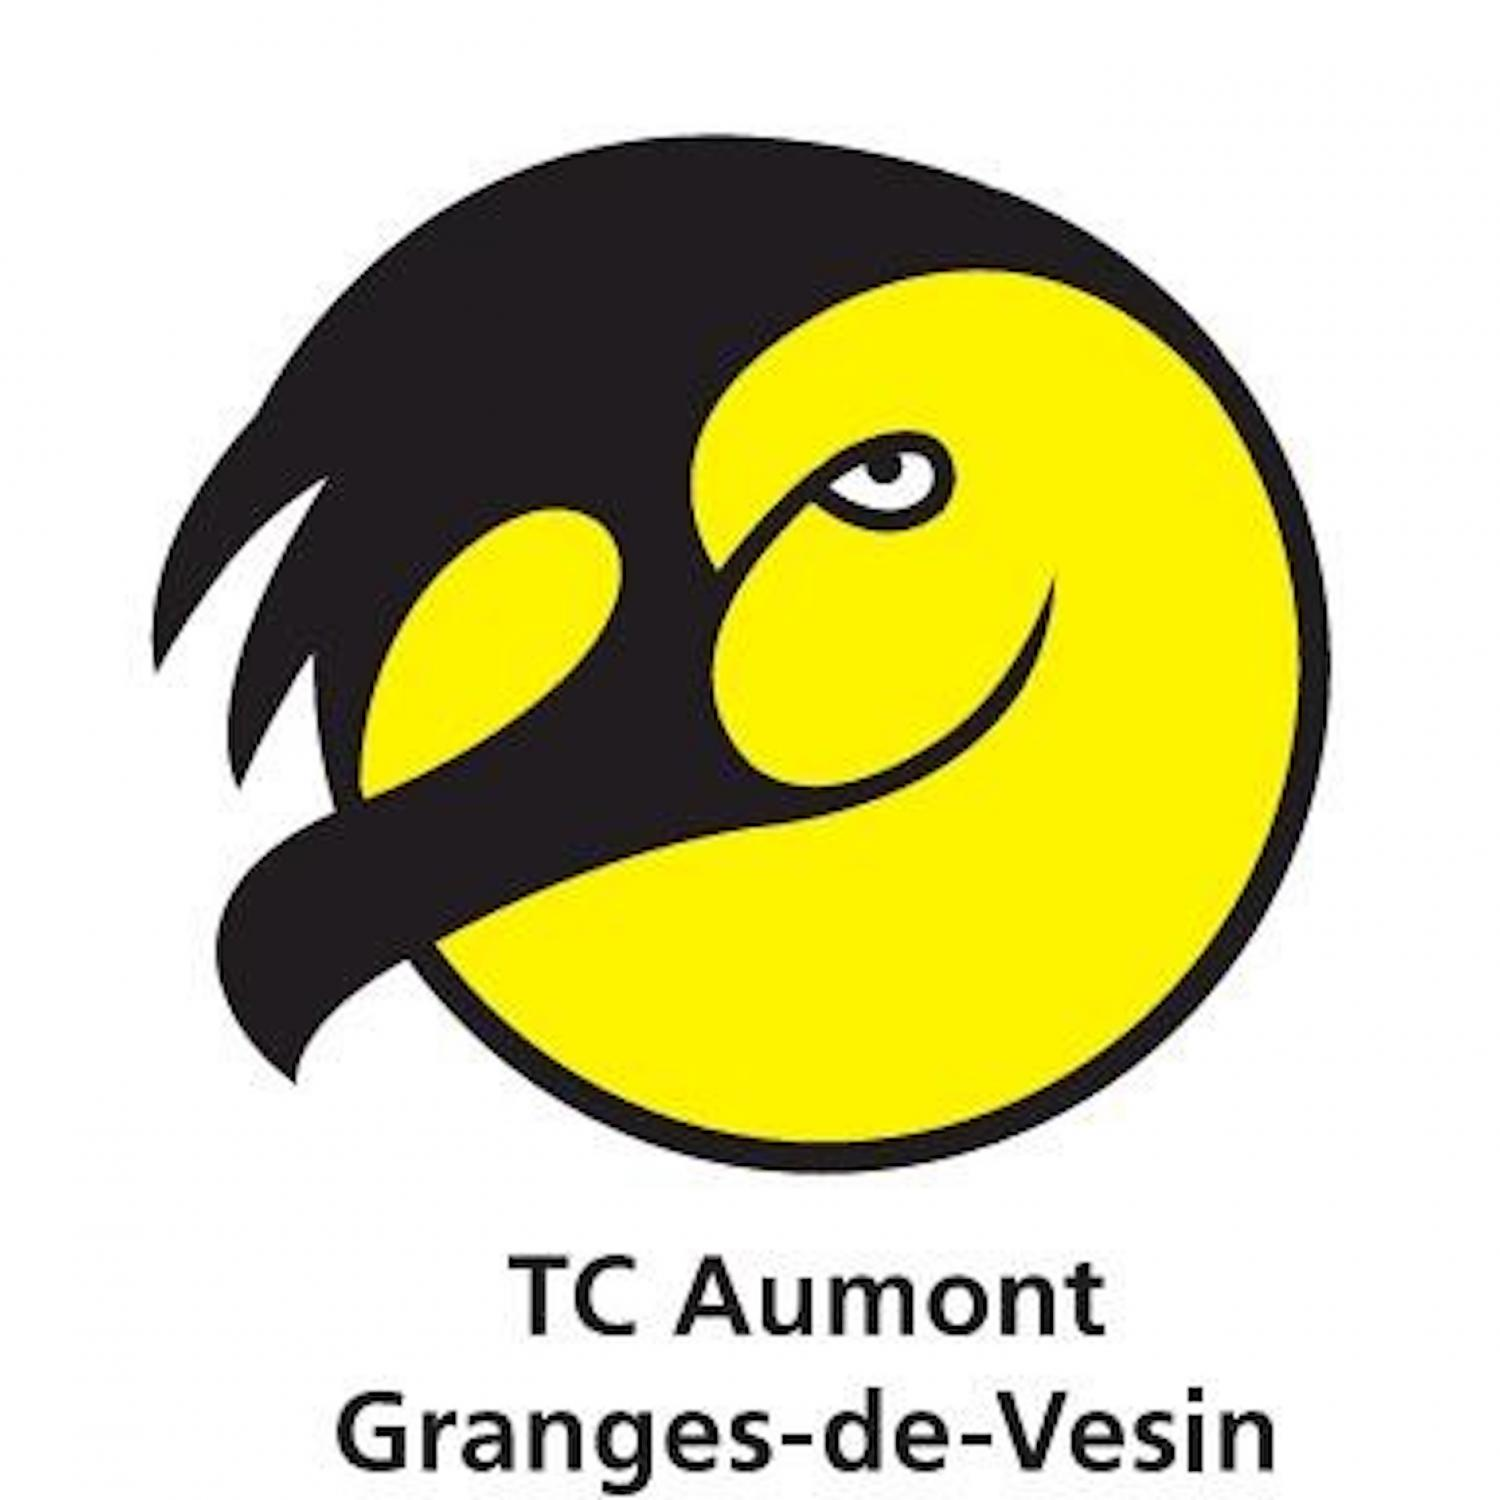 TC Aumont Granges-de-Vesin